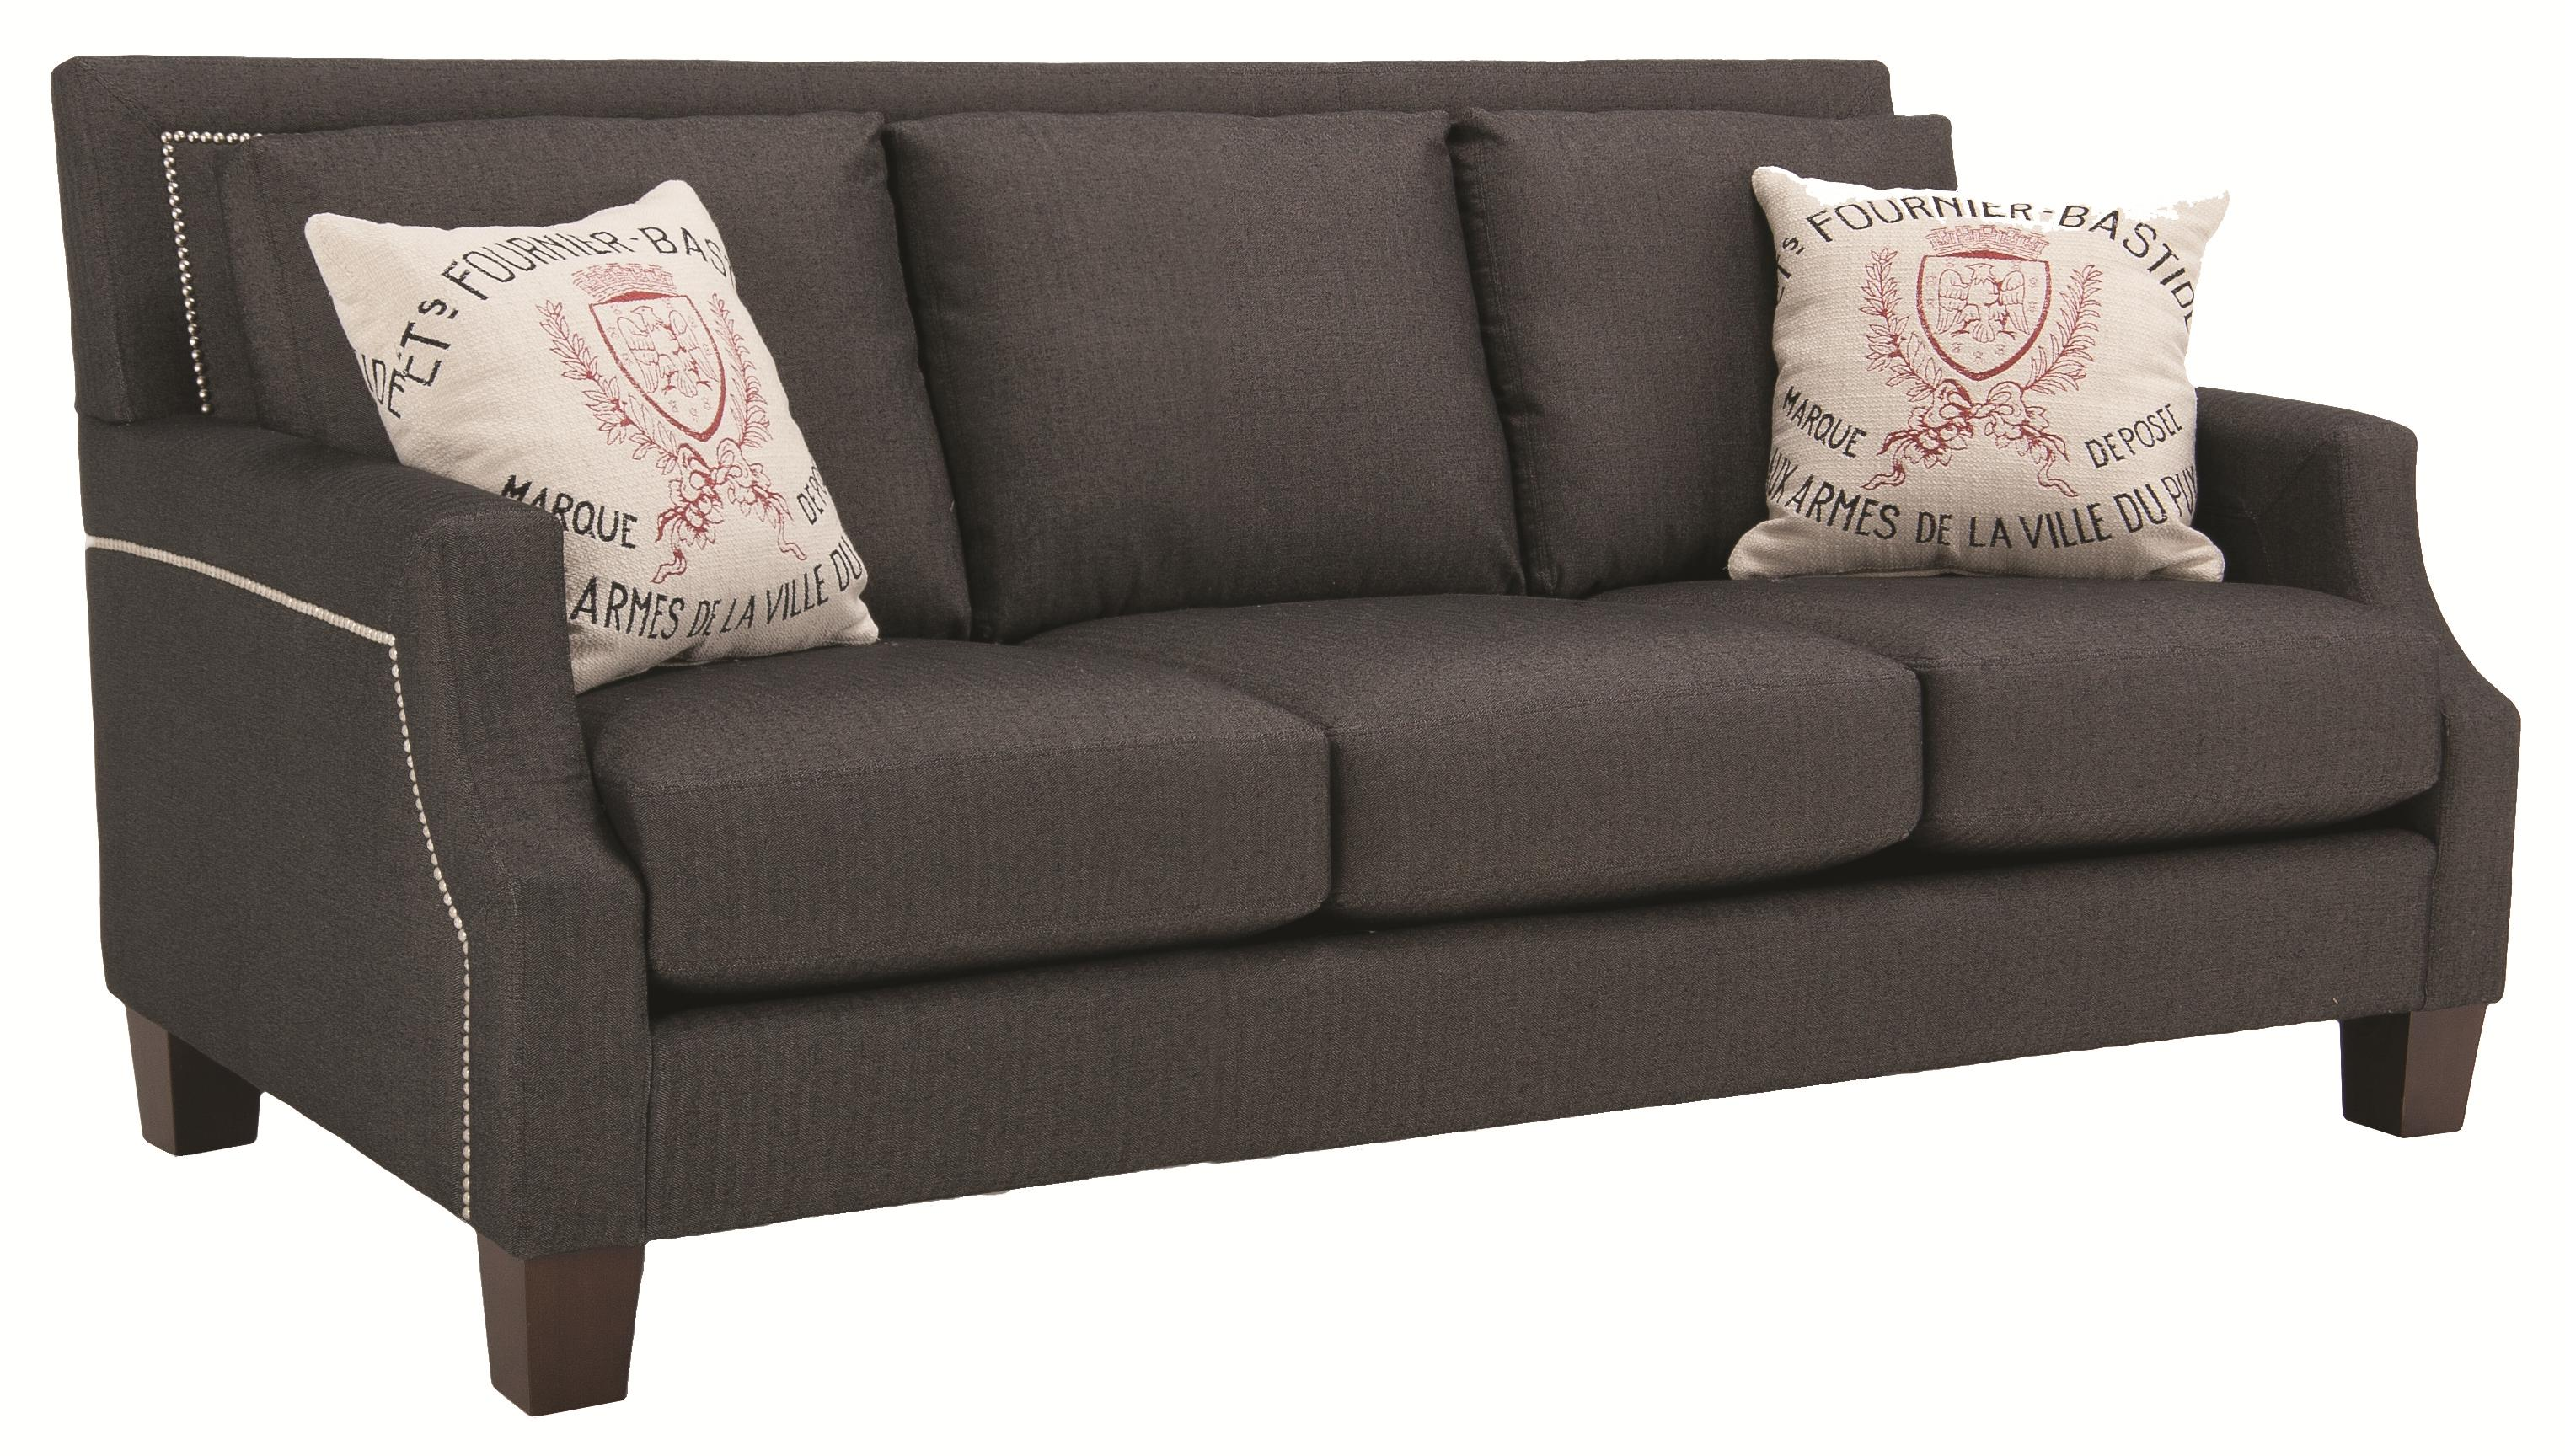 2135  Sofa by Decor-Rest at Upper Room Home Furnishings